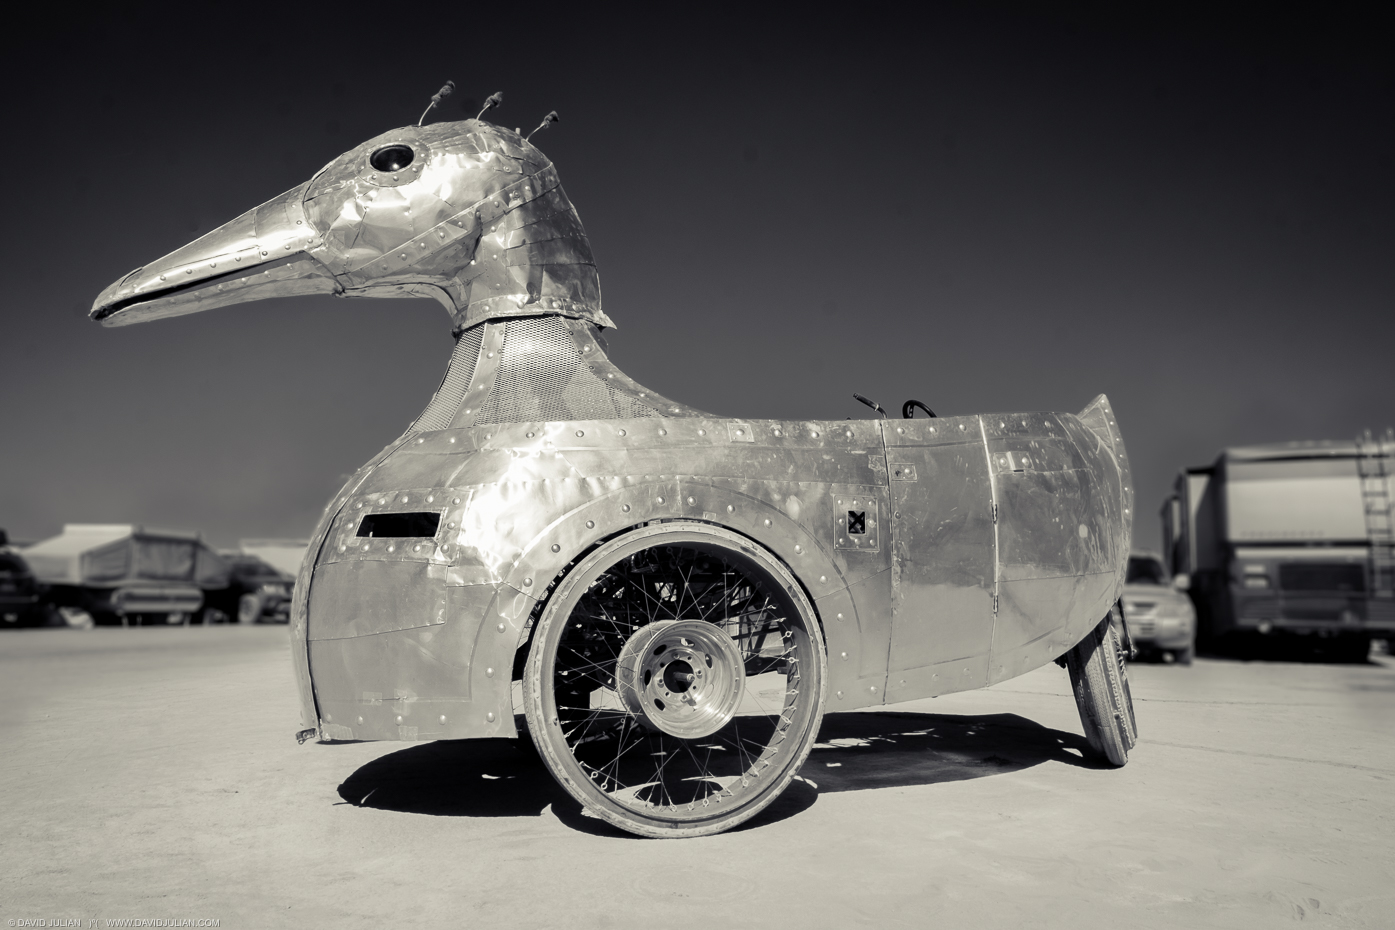 27Burning Man 2015-Duckmobile 0422-APF